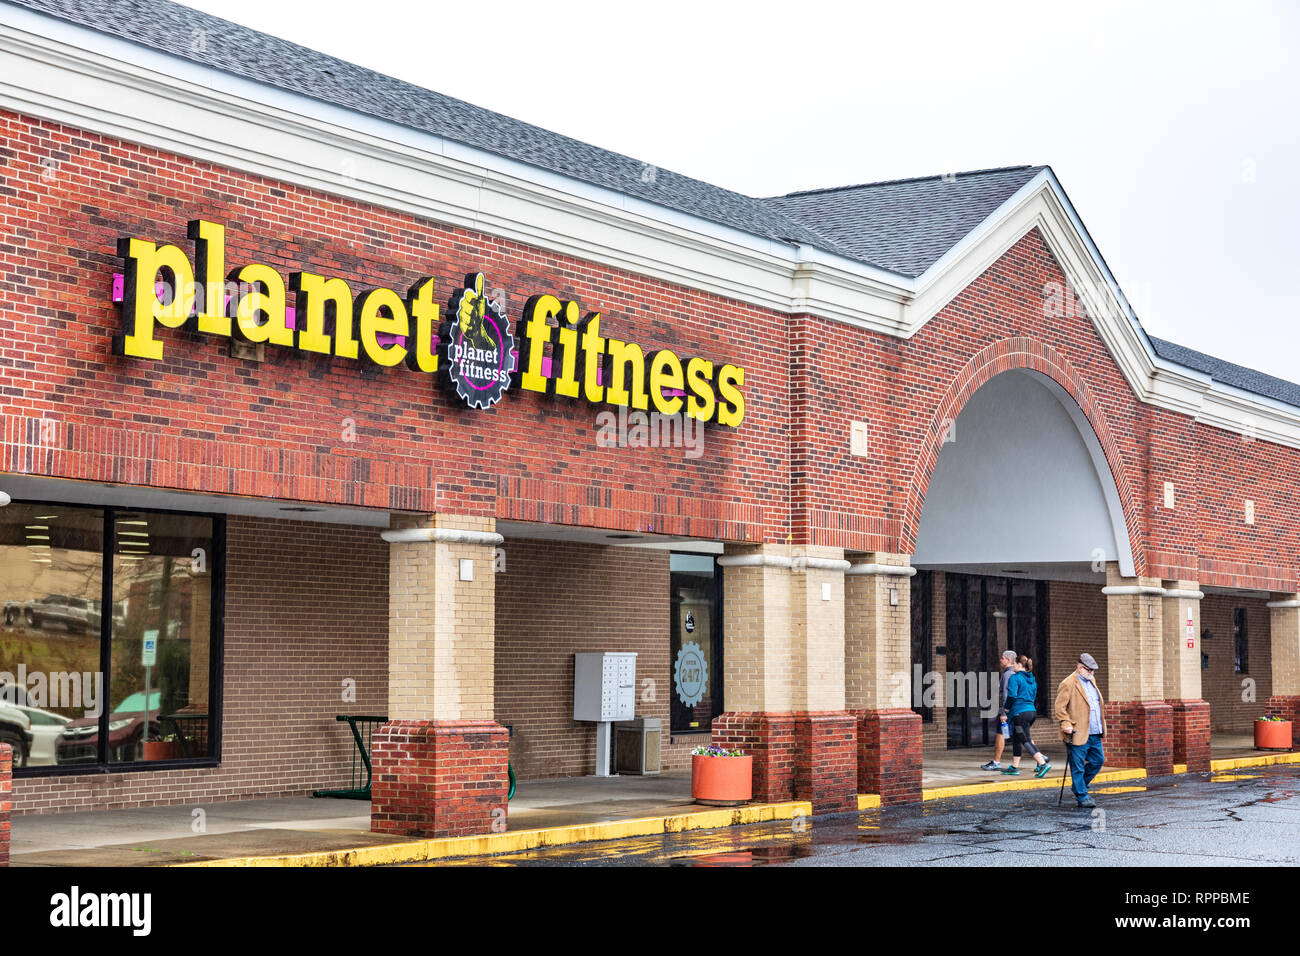 Hickory Nc Usa 2 22 19 A Planet Fitness Gym With People Entering And Exiting Stock Photo Alamy